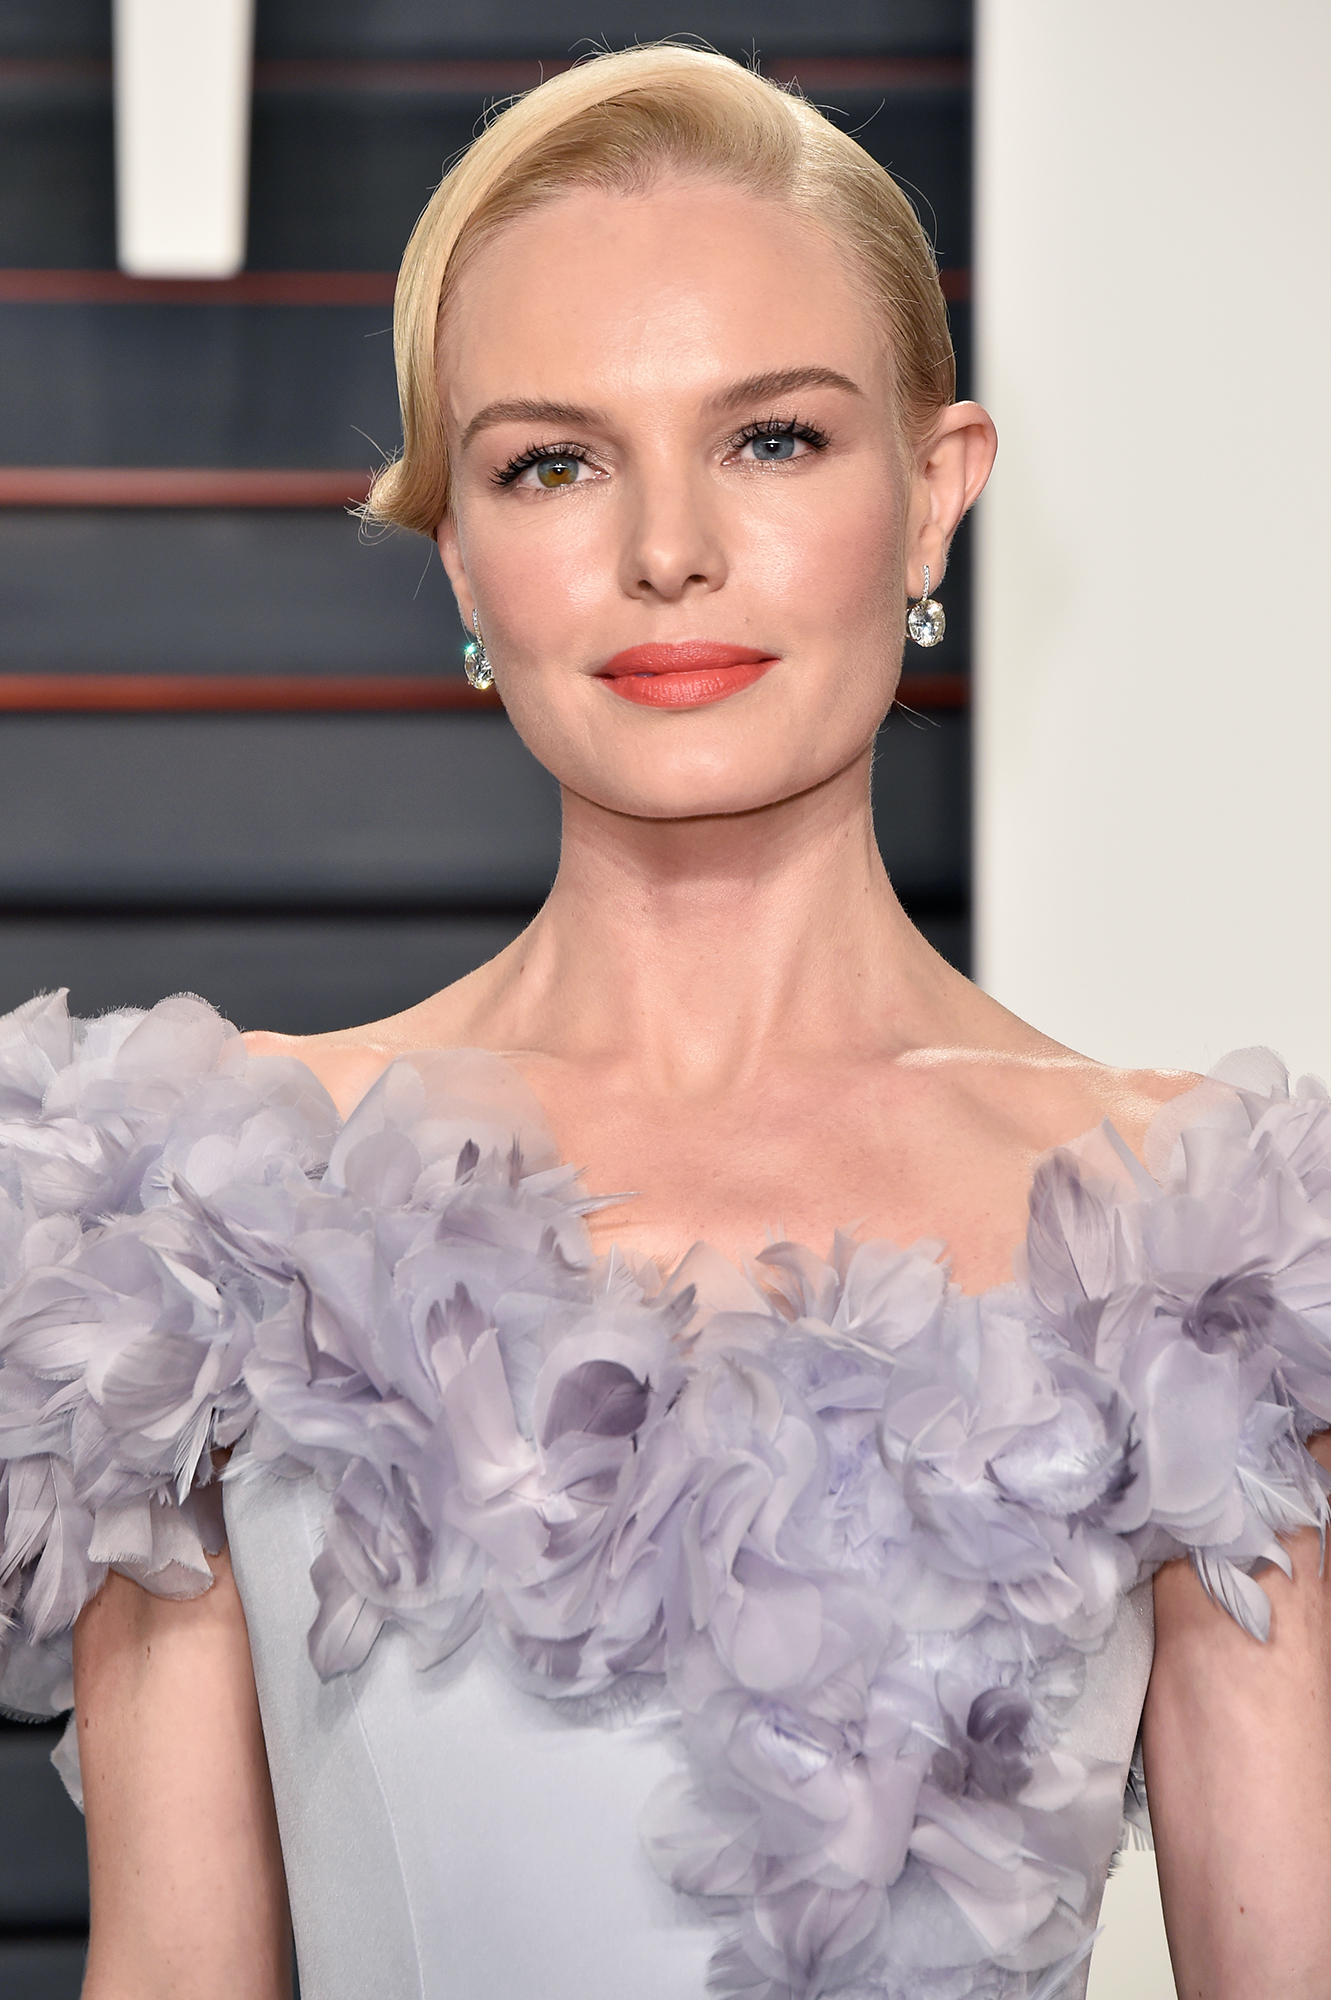 See Birthday Girl Kate Bosworth's Best Beauty Moments - True to form, Bosworth complemented her frilly Ralph & Russo gown and glam hair at the 2016 Vanity Fair Oscar Party with glowing skin and a simple peach lip.